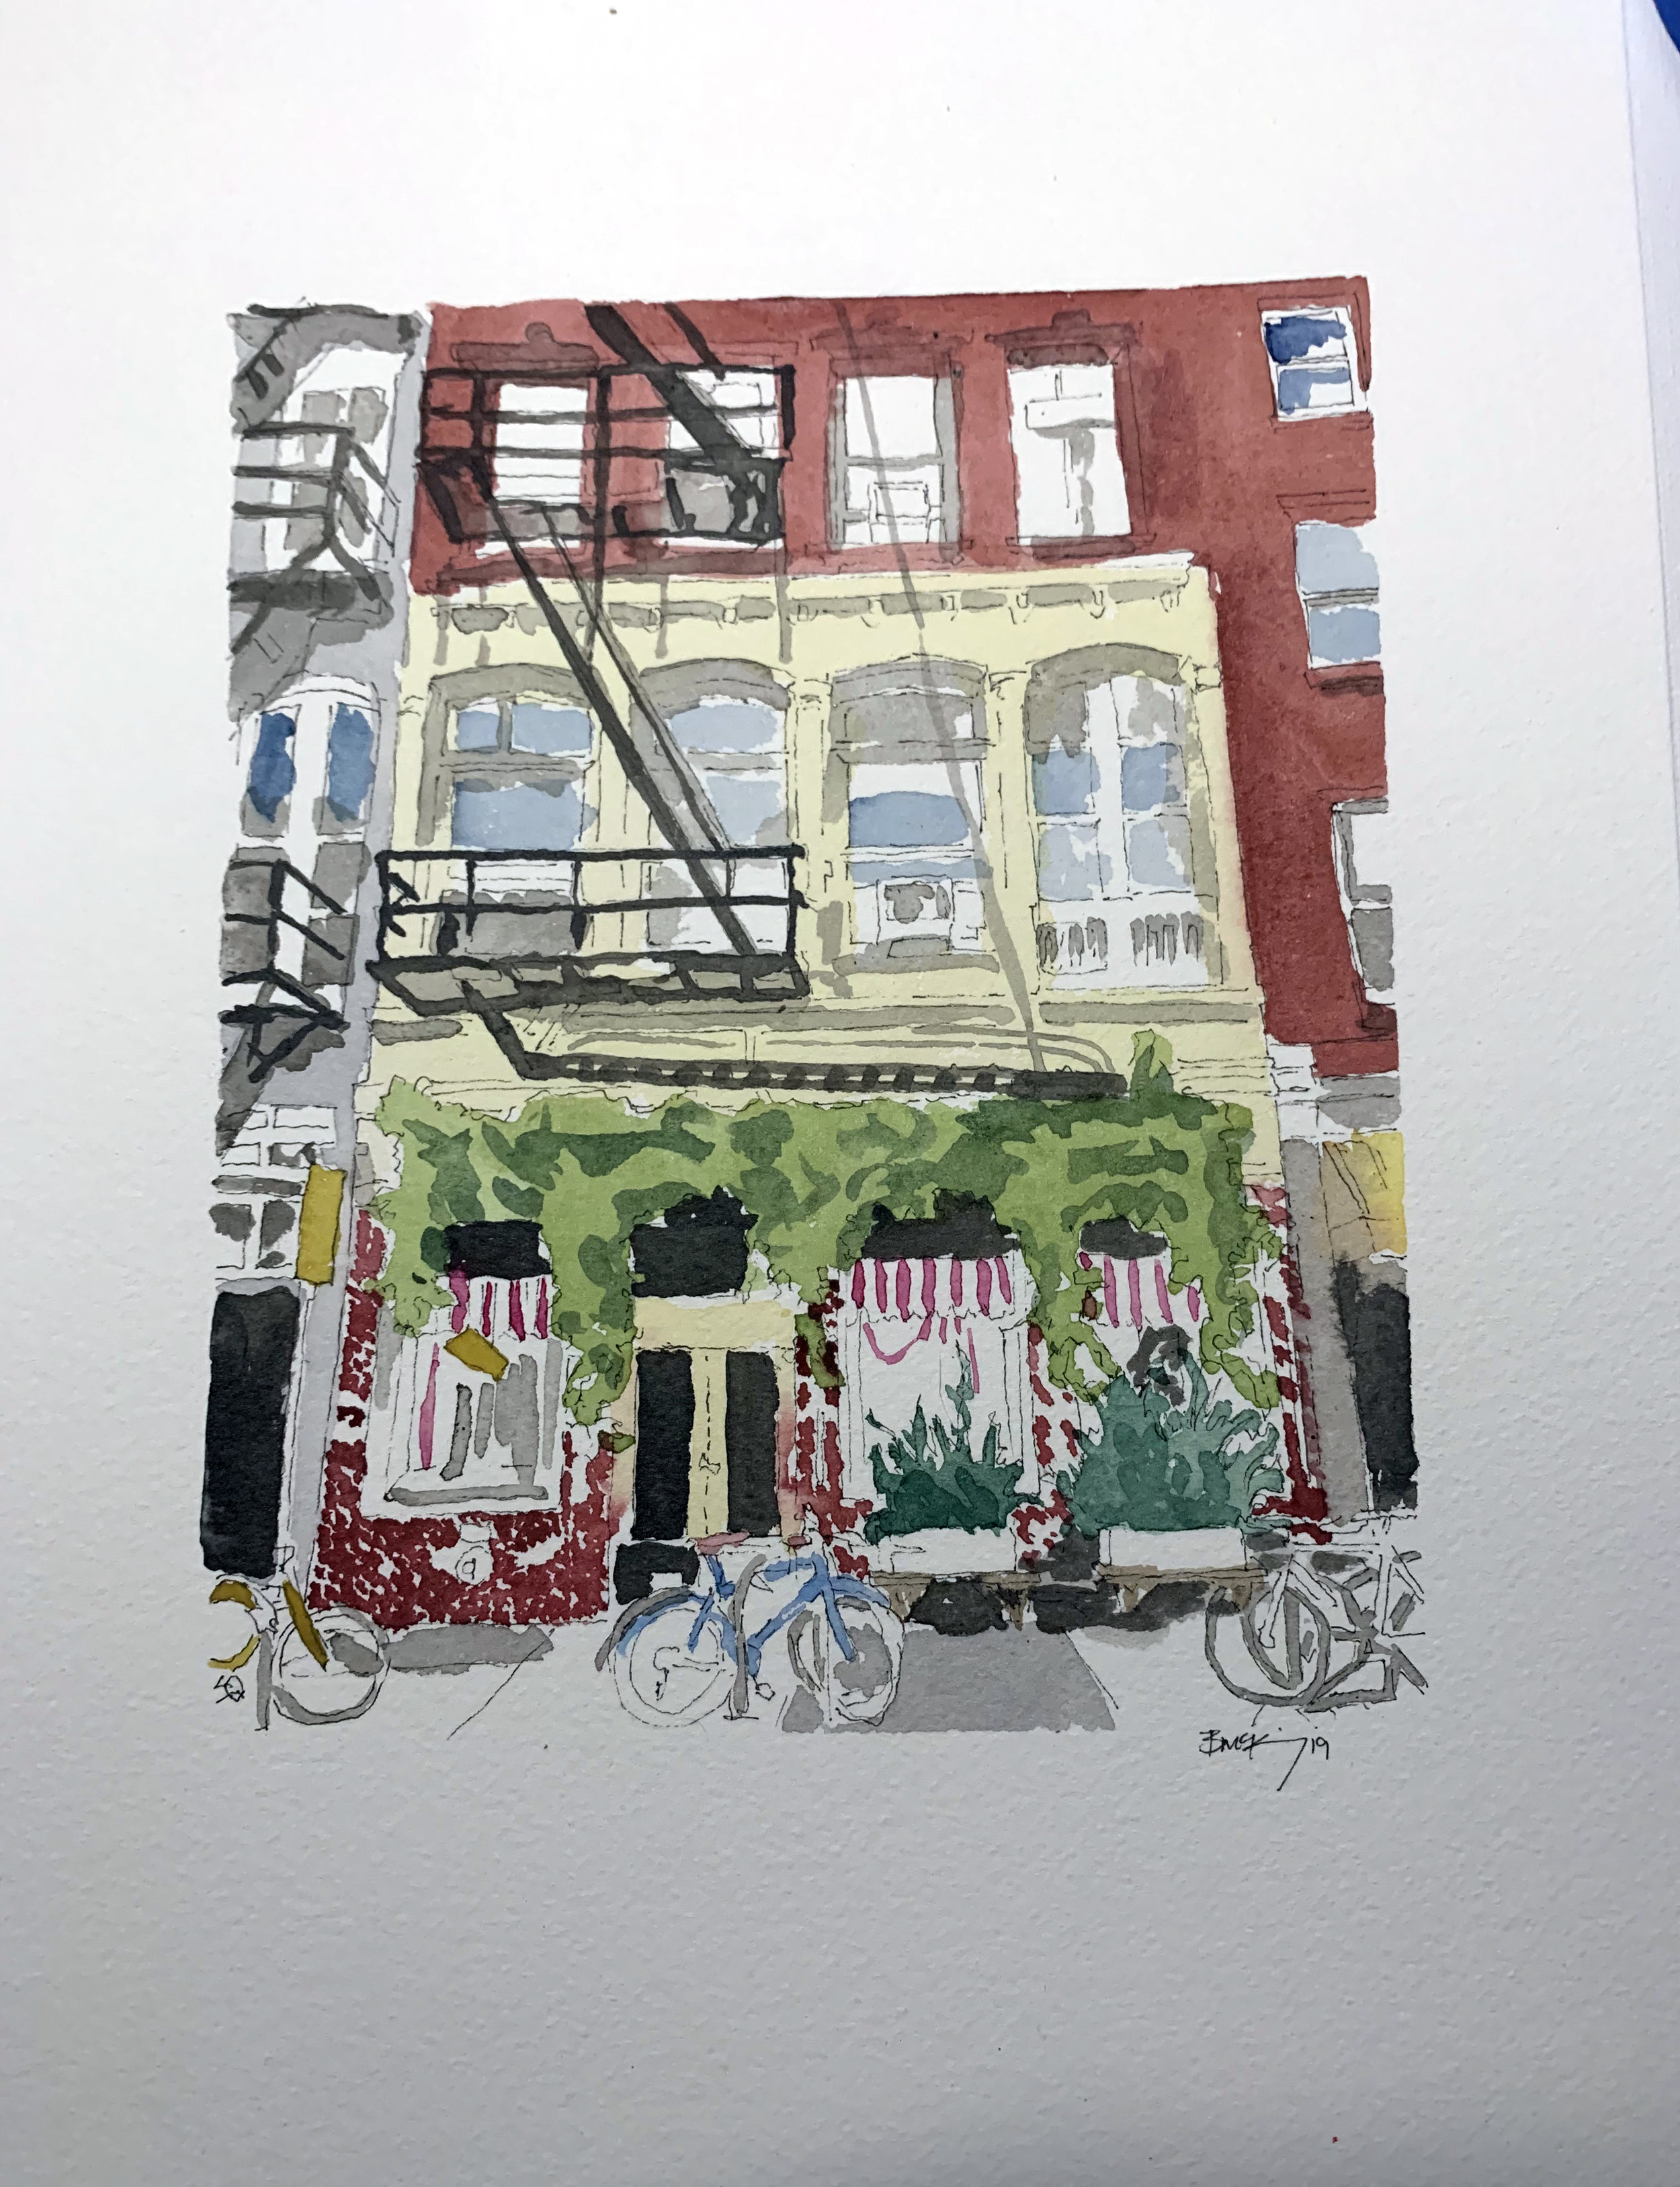 Store front Fishtown, 9x12 inches, watercolor, ink wash and pen on 140lb, Feb 2019